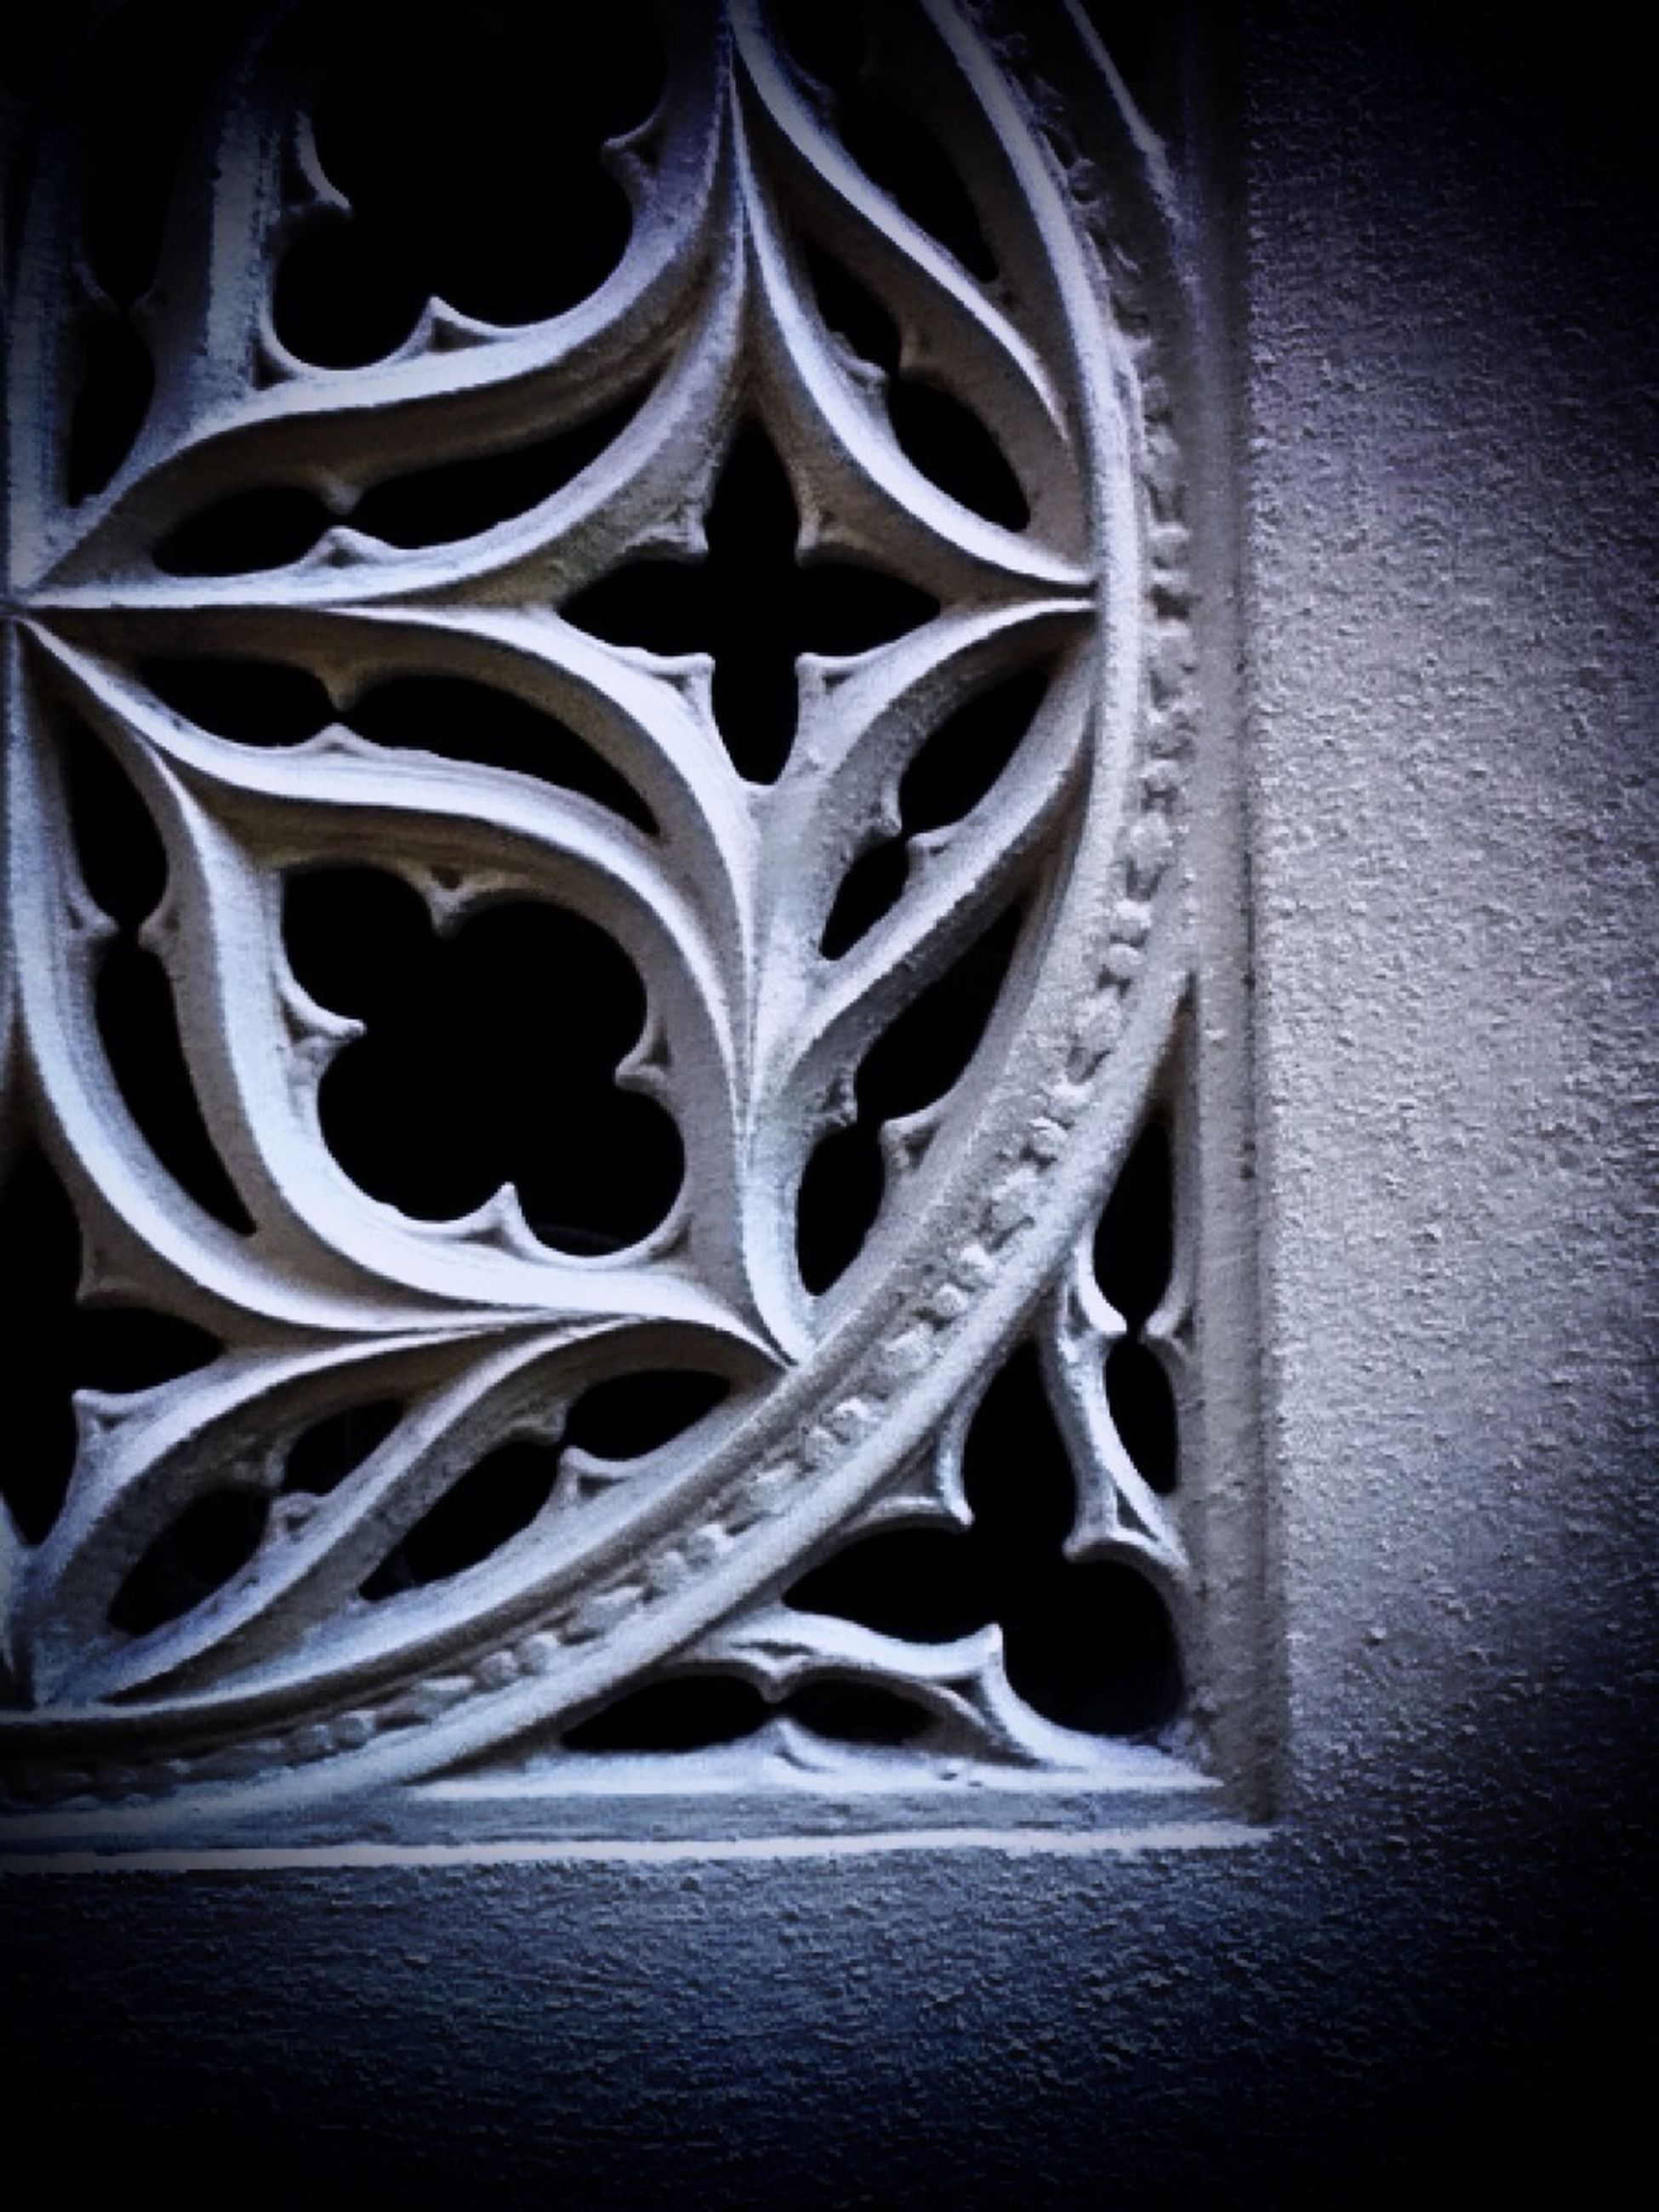 indoors, art and craft, design, pattern, art, close-up, creativity, religion, ornate, spirituality, decoration, no people, place of worship, carving - craft product, church, shape, human representation, detail, craft